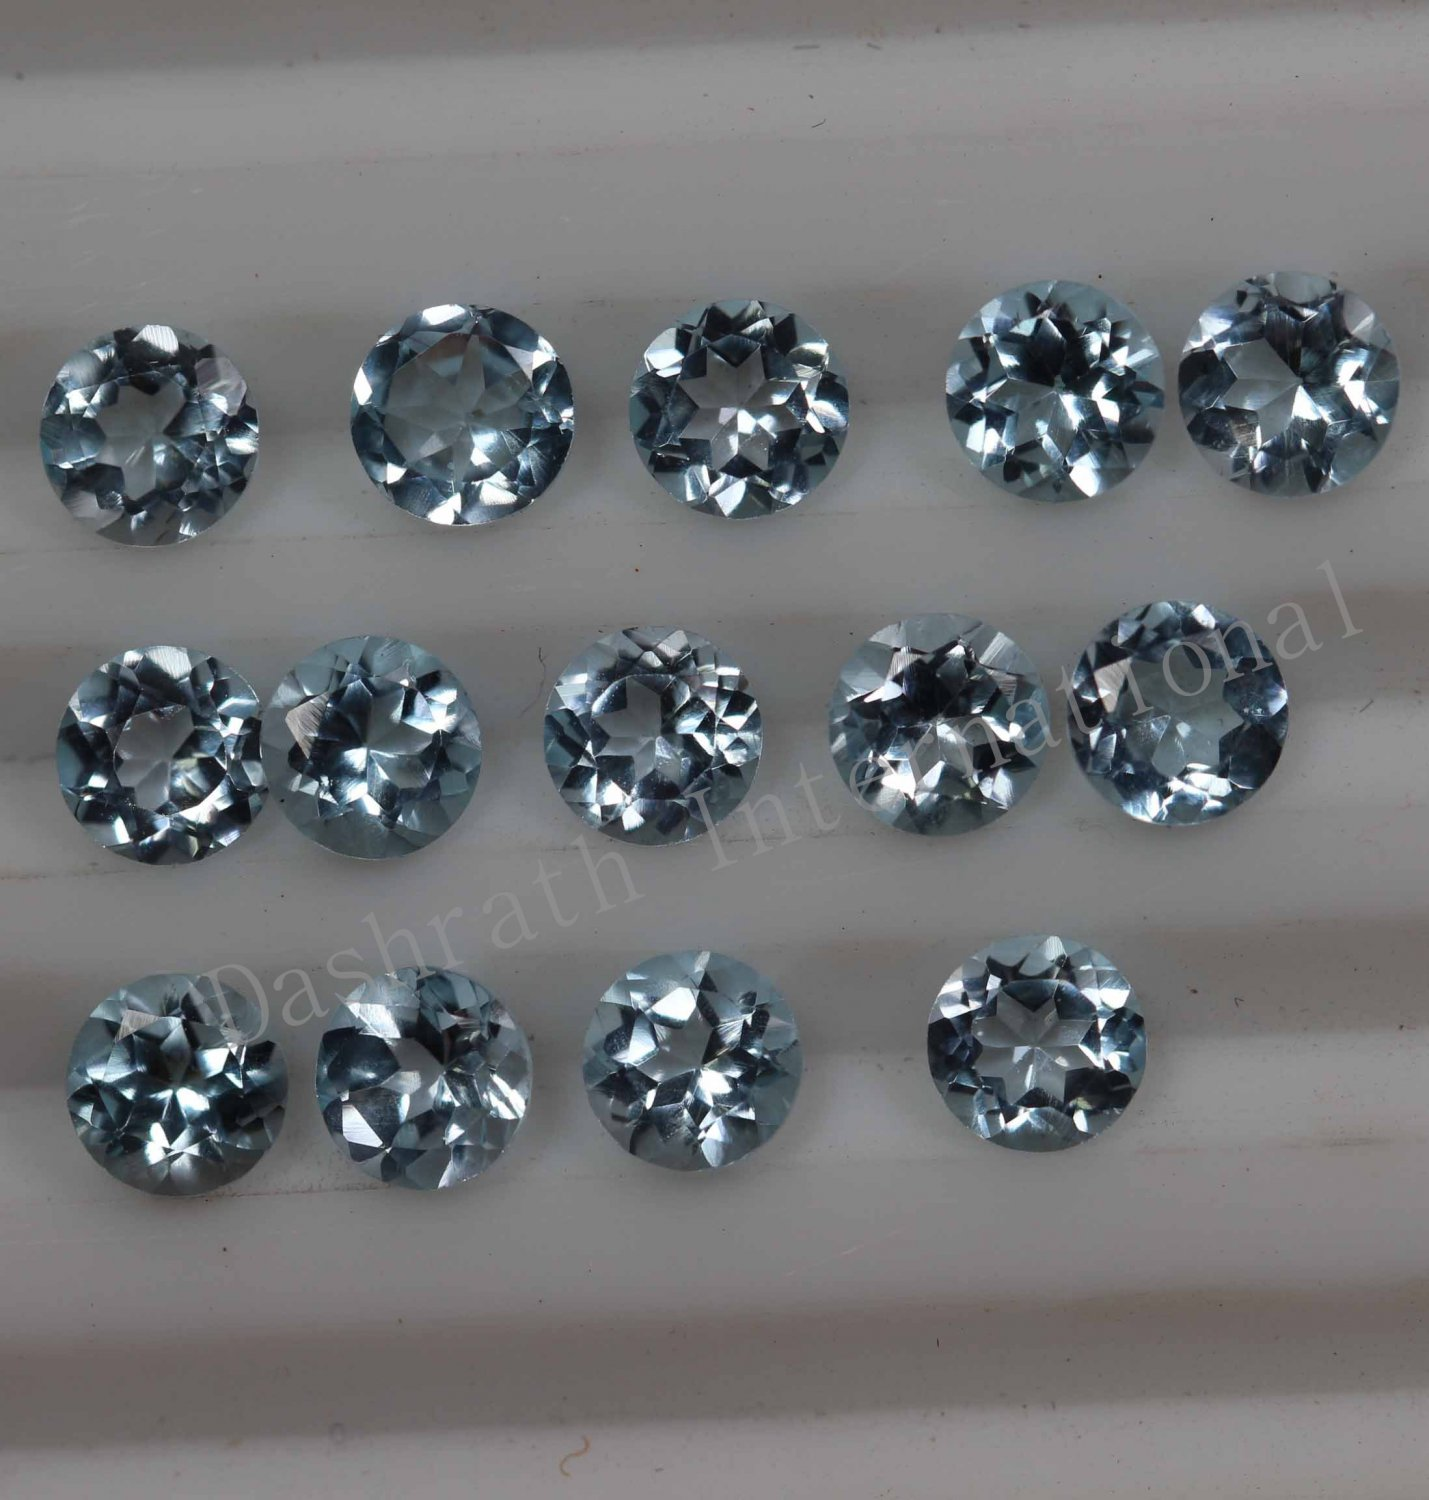 3mmNatural Sky Blue Topaz Faceted Cut Round 25 Pieces Lot Blue Color  Top Quality Loose Gemstone